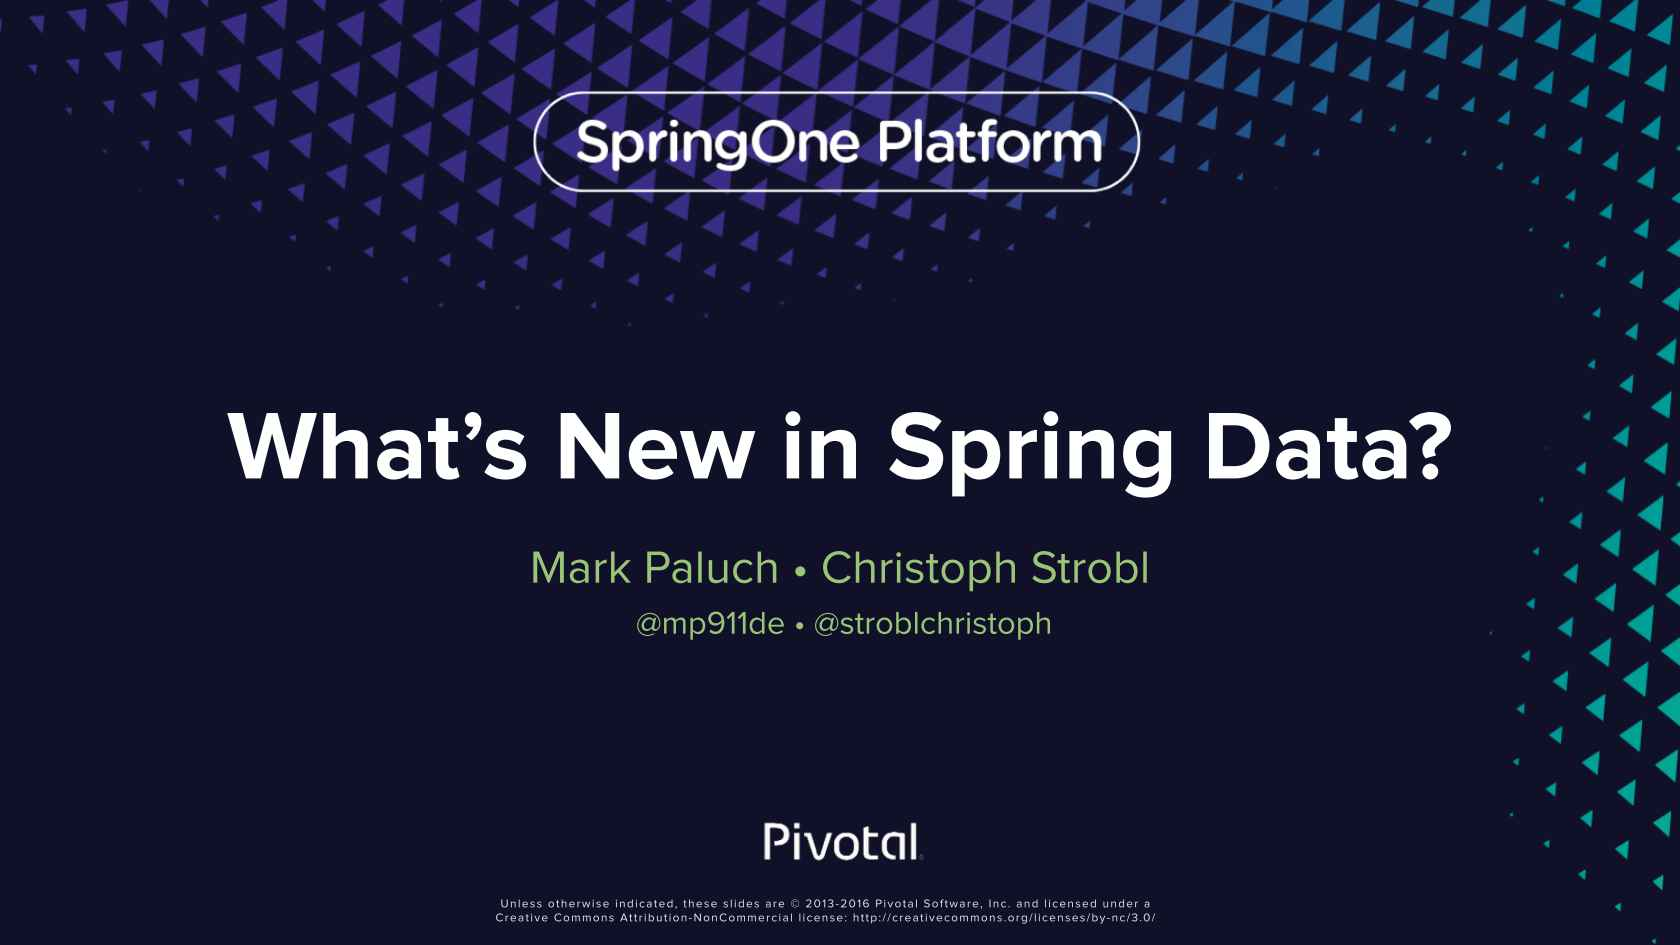 What's New in Spring Data?